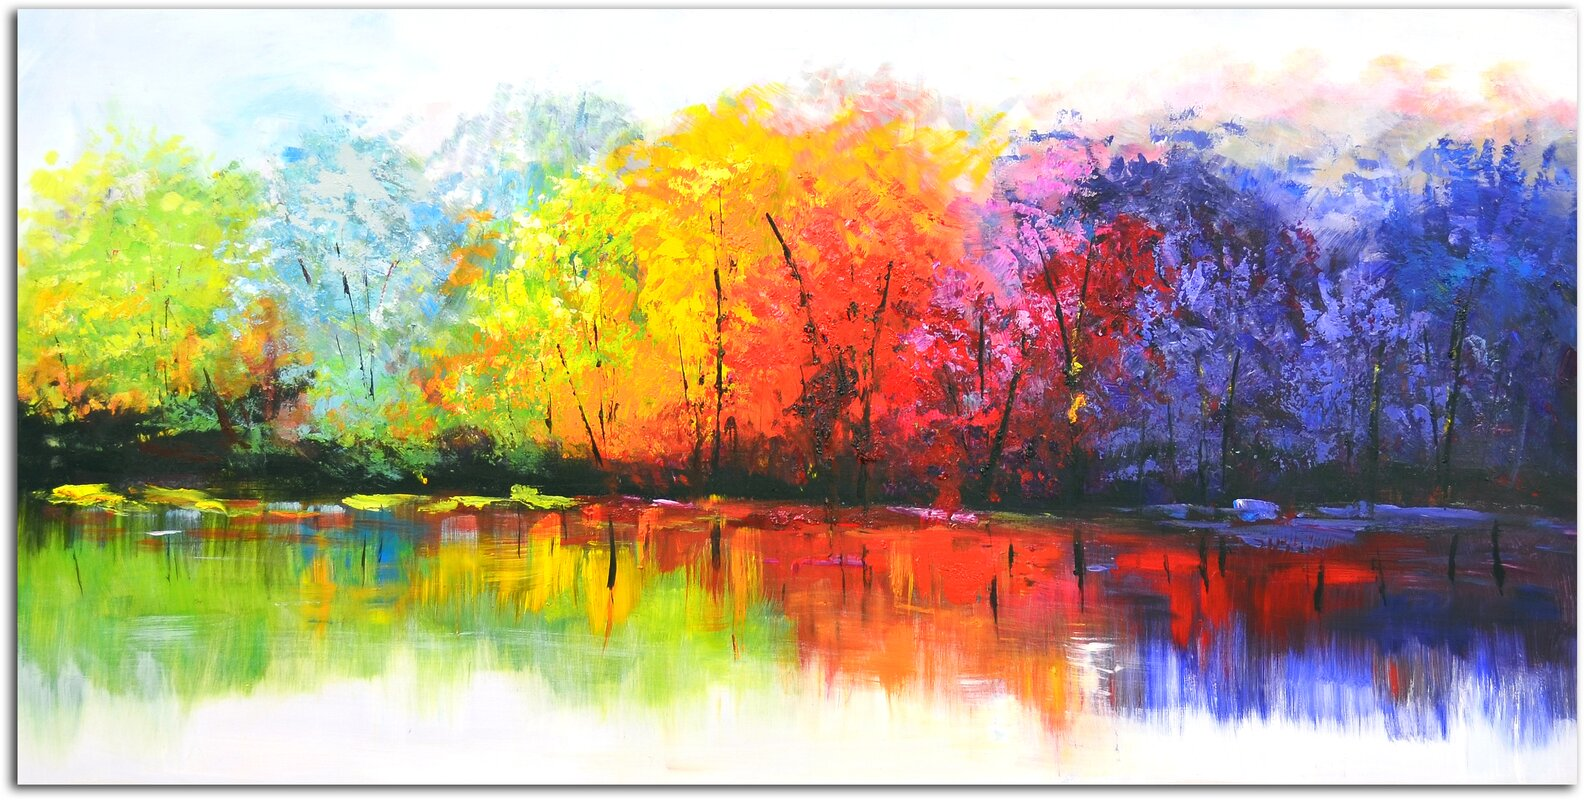 Reflective+Rainbow+Trees+Painting+on+Canvas